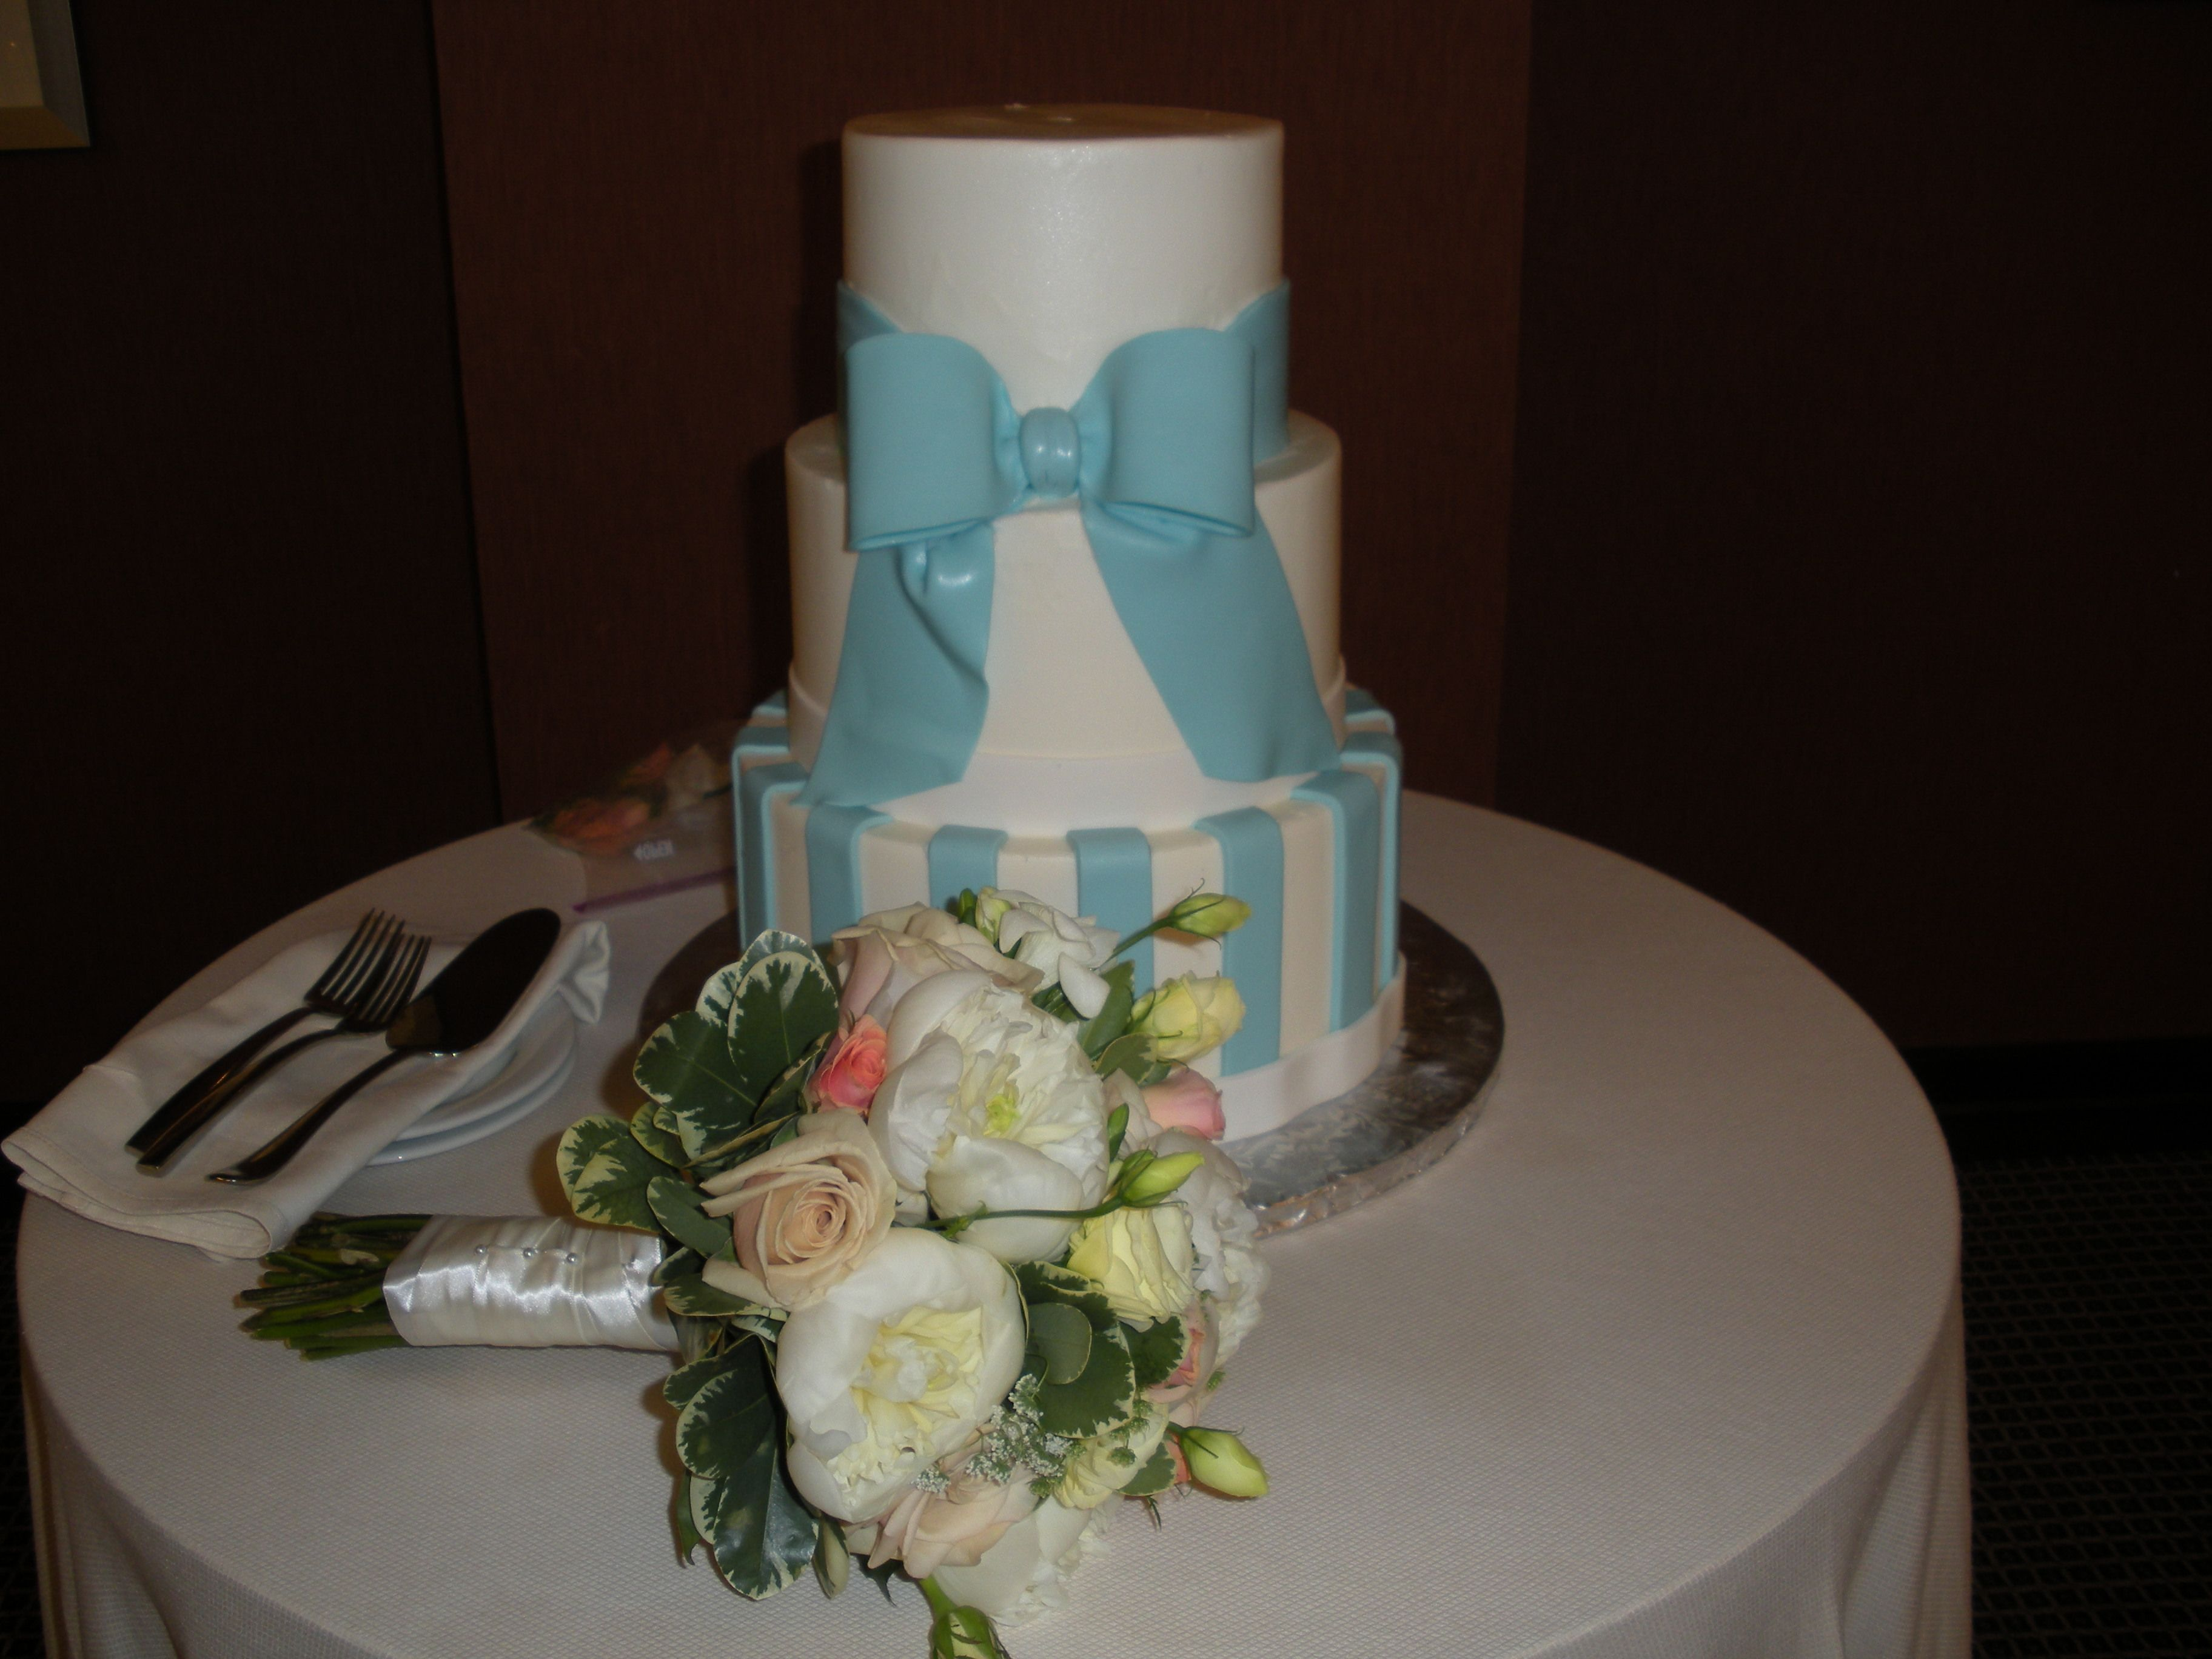 Wedding 8-7-2010 The Liberty Hotel (Old Charles St. Jail, Boston) Wedding Cake and Bridal Bouquet.